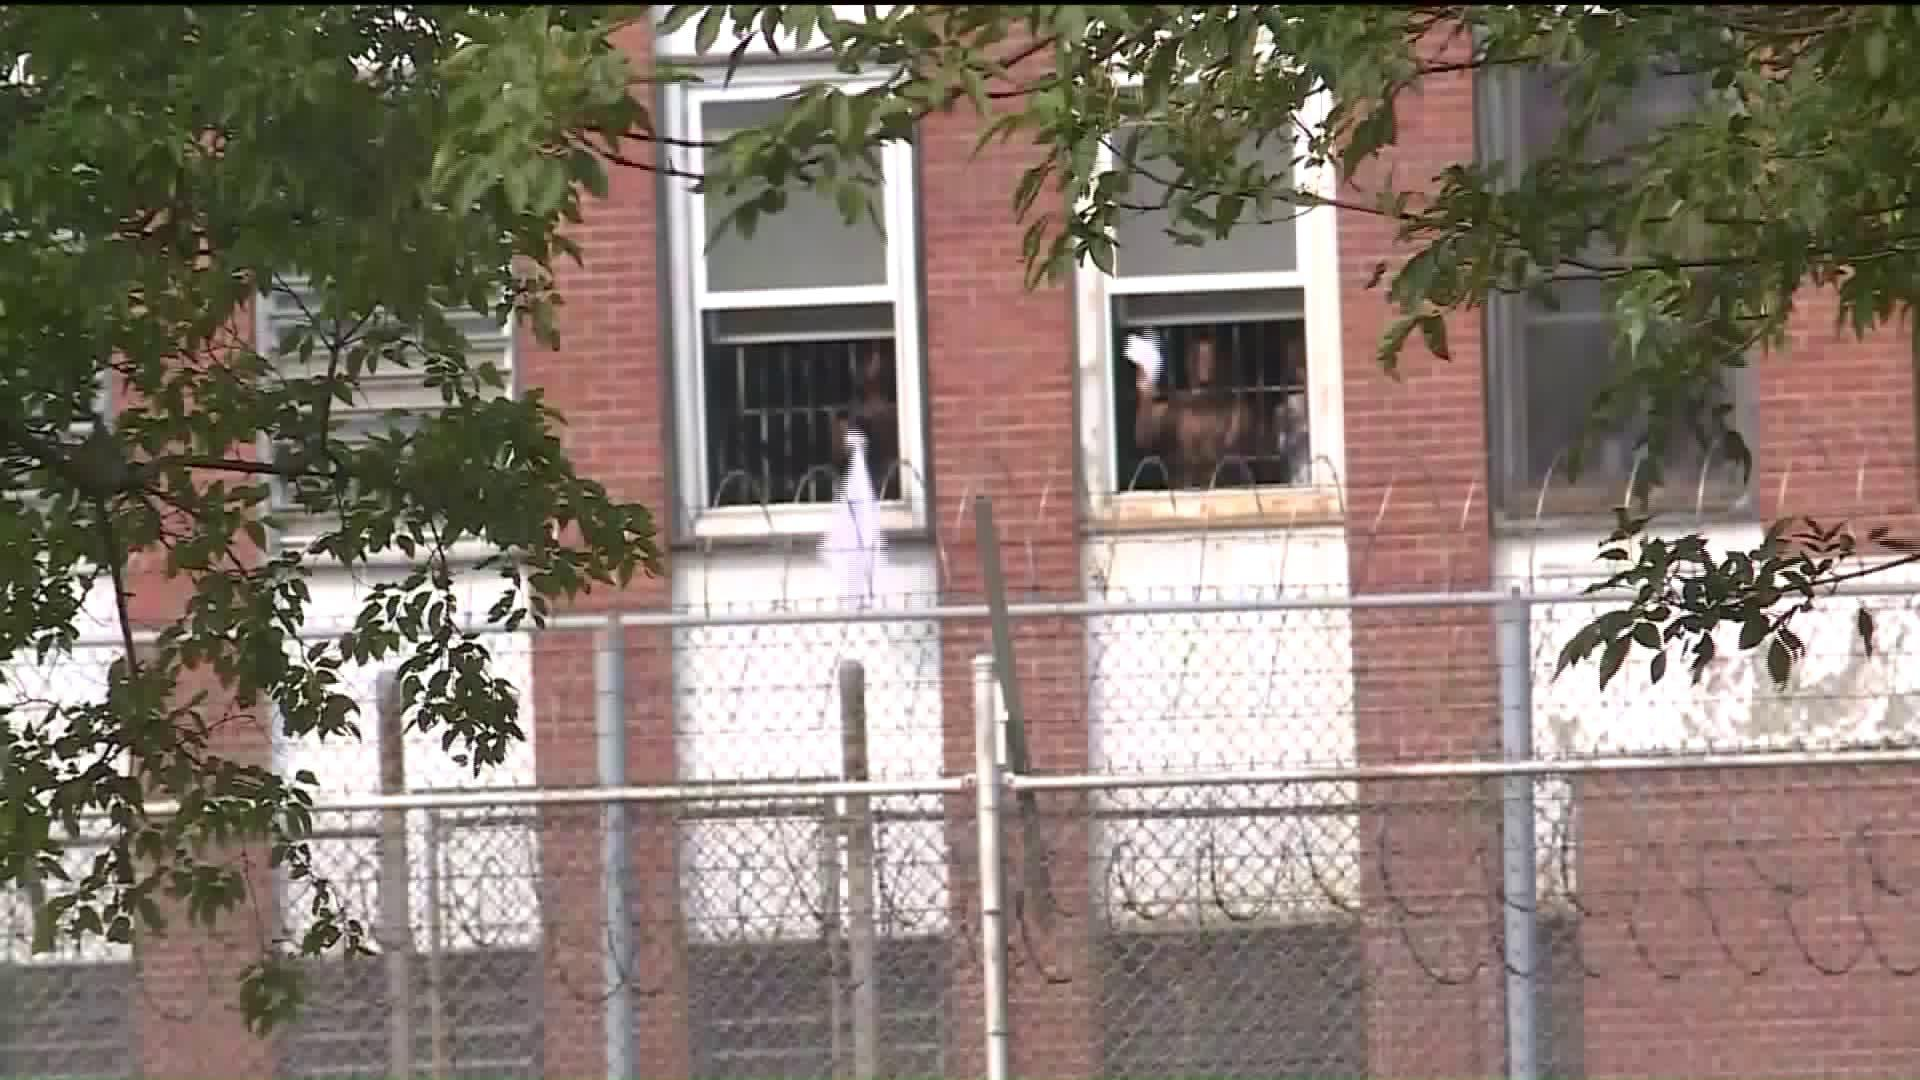 Inmates Heard Screaming for Help As Heat Wave Bakes St. Louis Prison